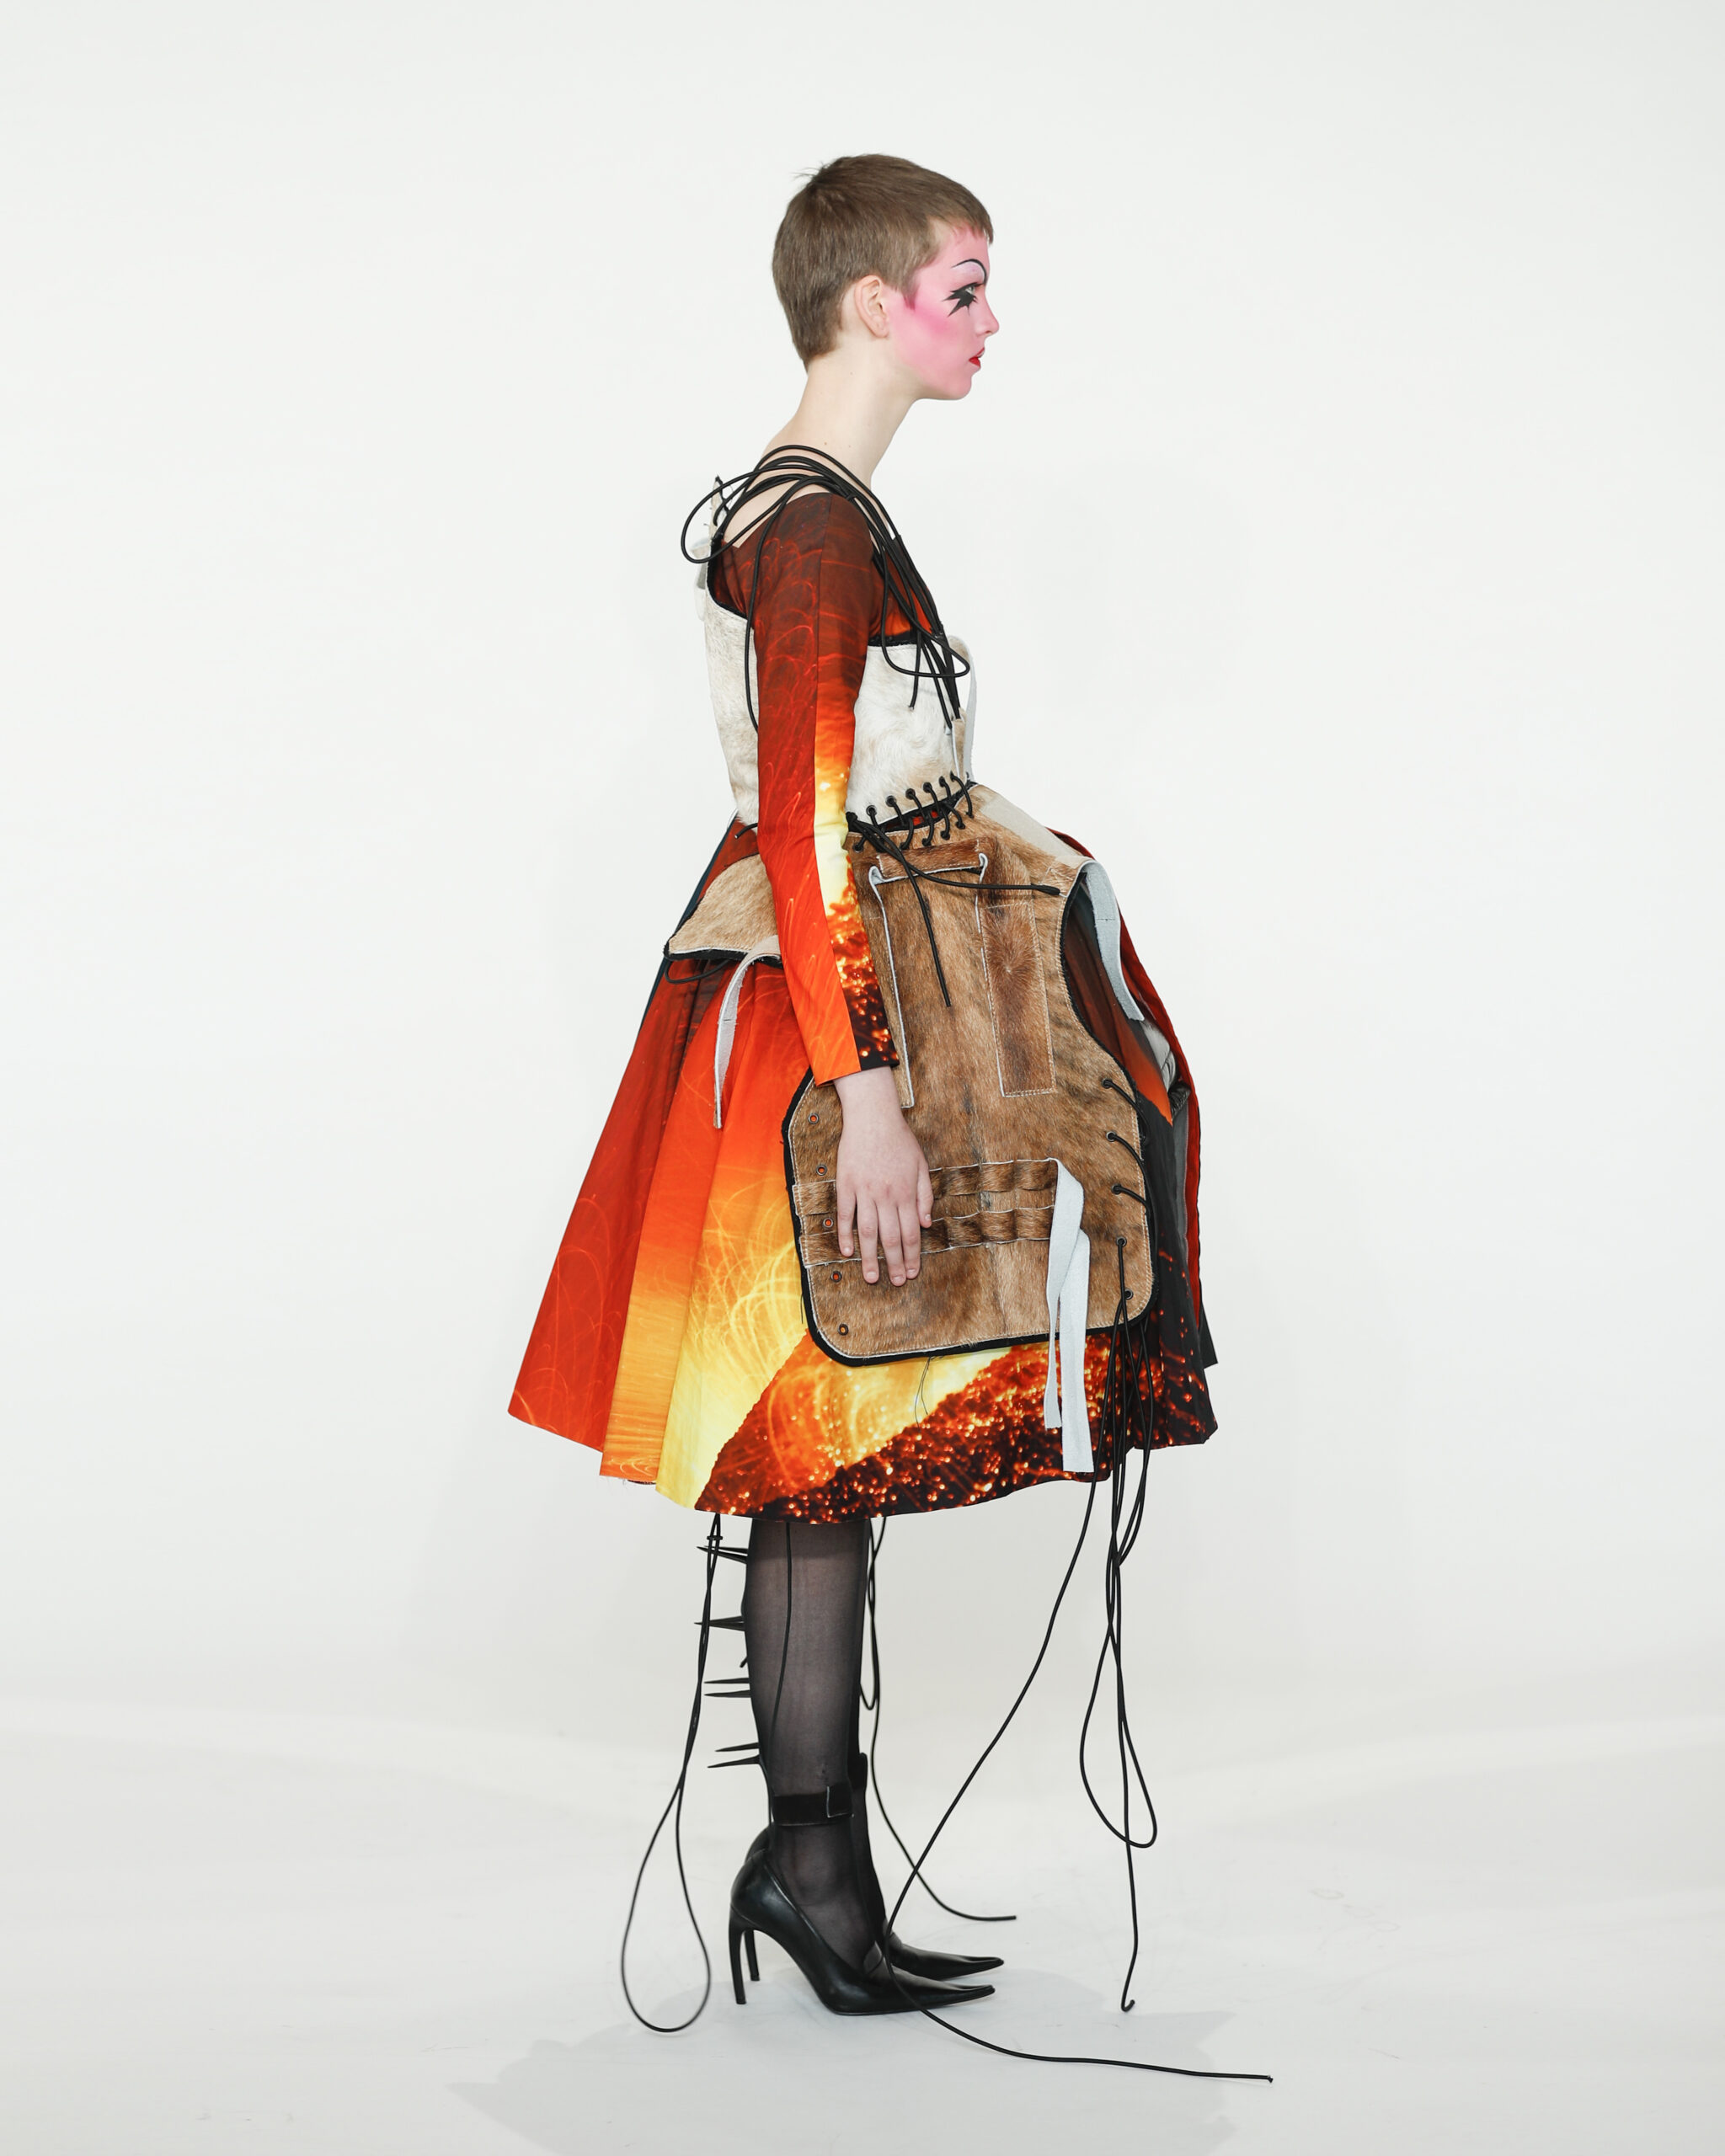 Sci-fi meets 50s French couture in Benji Nijenhuis' collection of dystopian fantasies